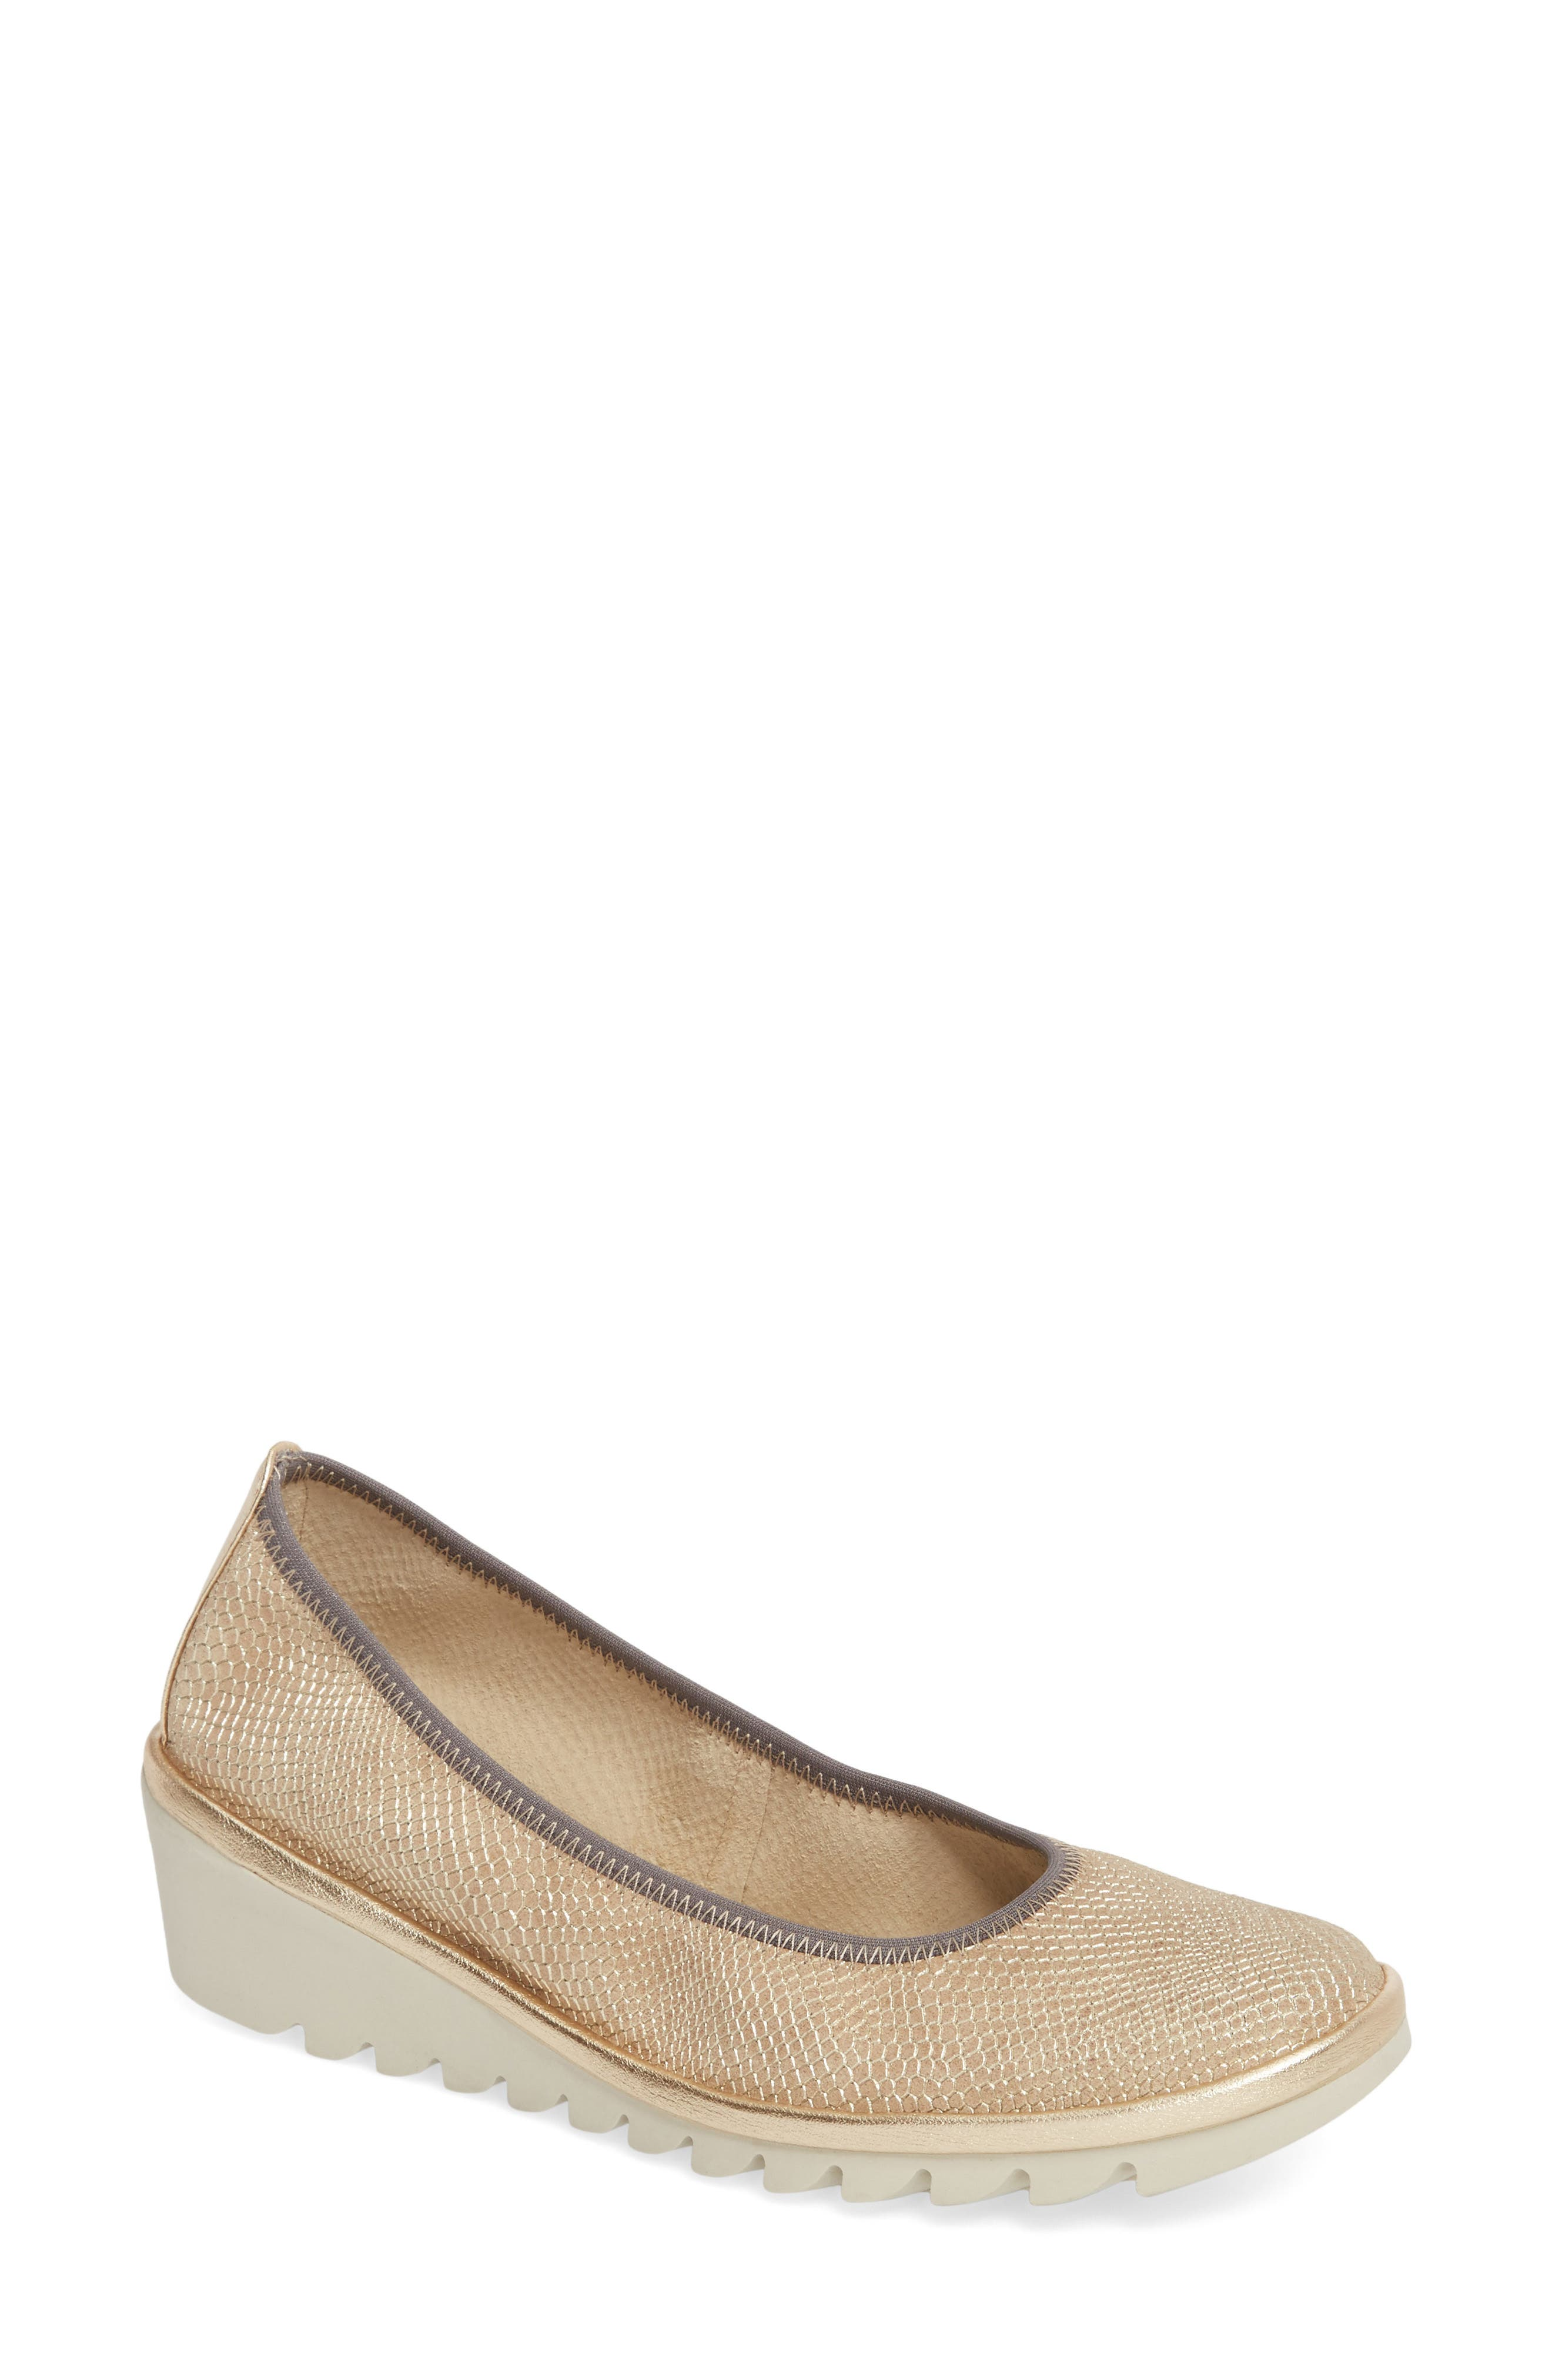 Mel A Drama Wedge Skimmer,                         Main,                         color, DUNE LEATHER